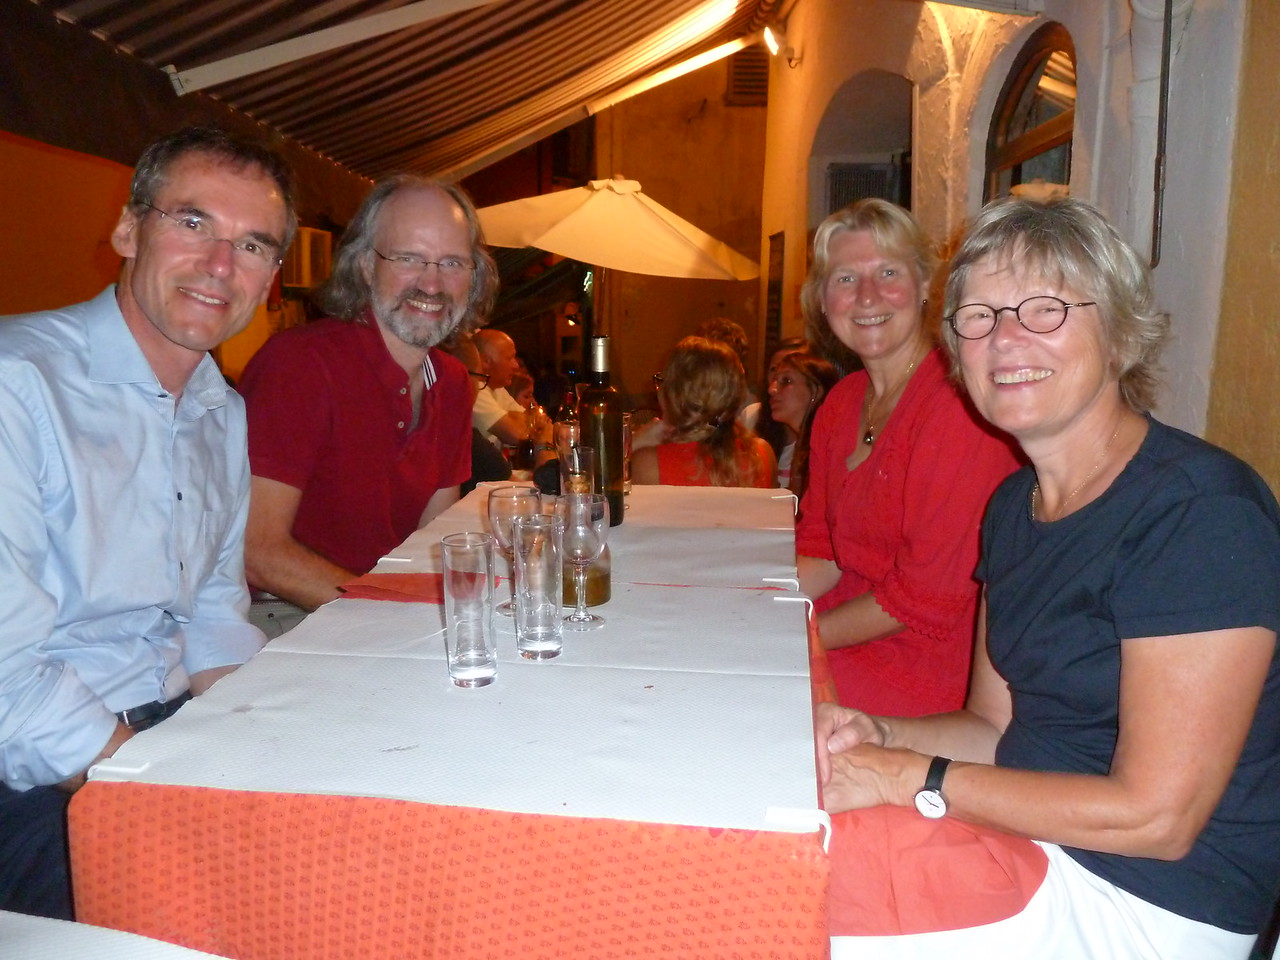 Sept 9: Dinner in Nice with Olaf and Meike (from Karlsruhe, Germany).